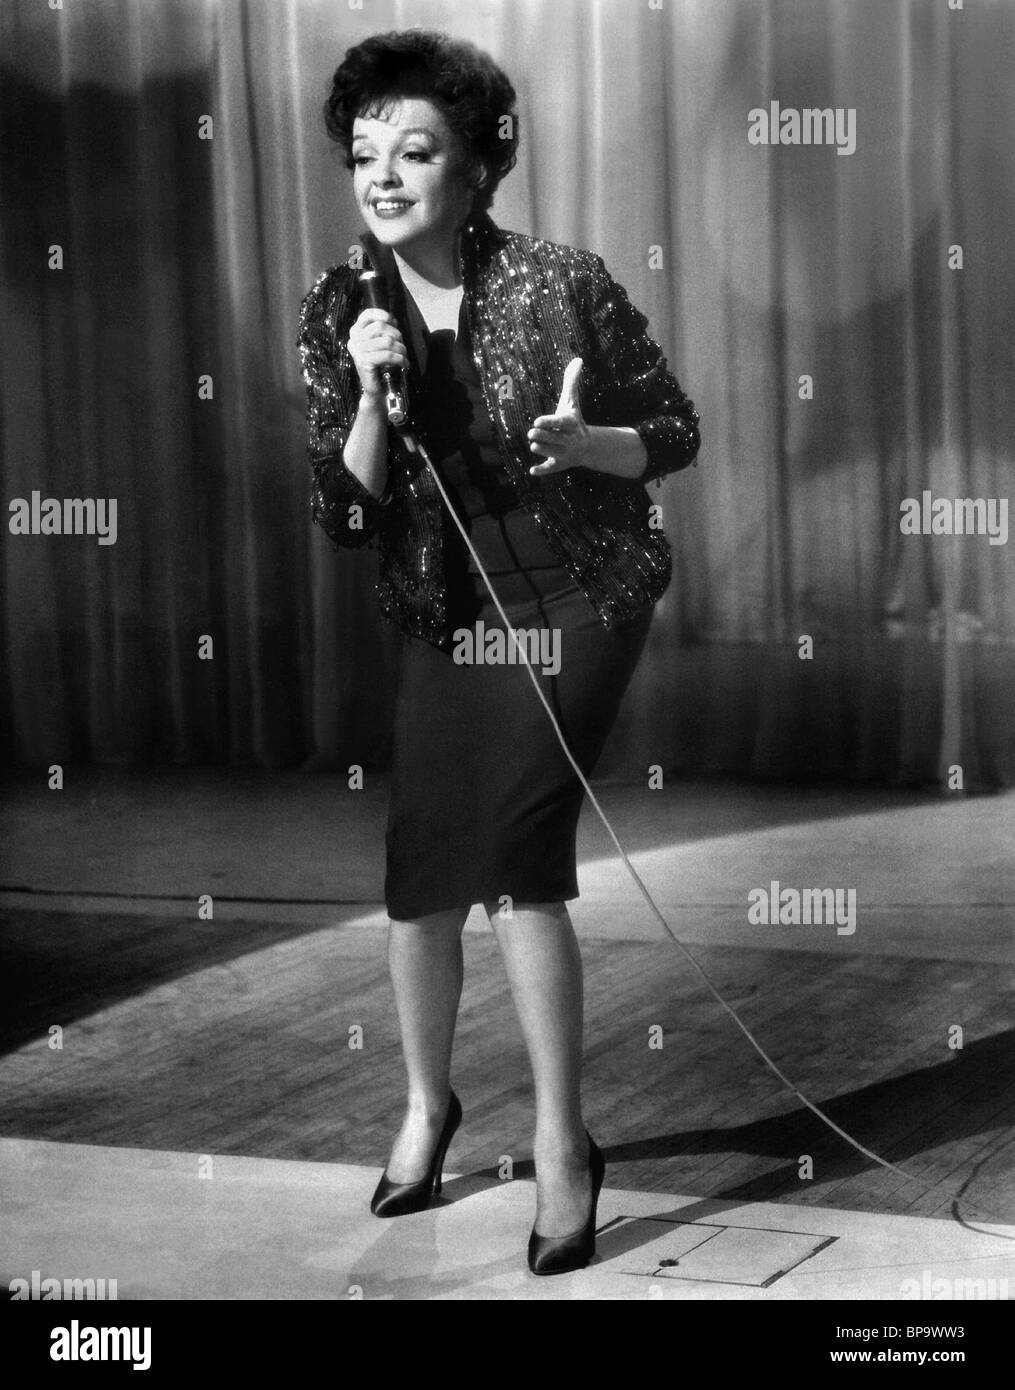 Judy Garland Singing High Resolution Stock Photography And Images Alamy